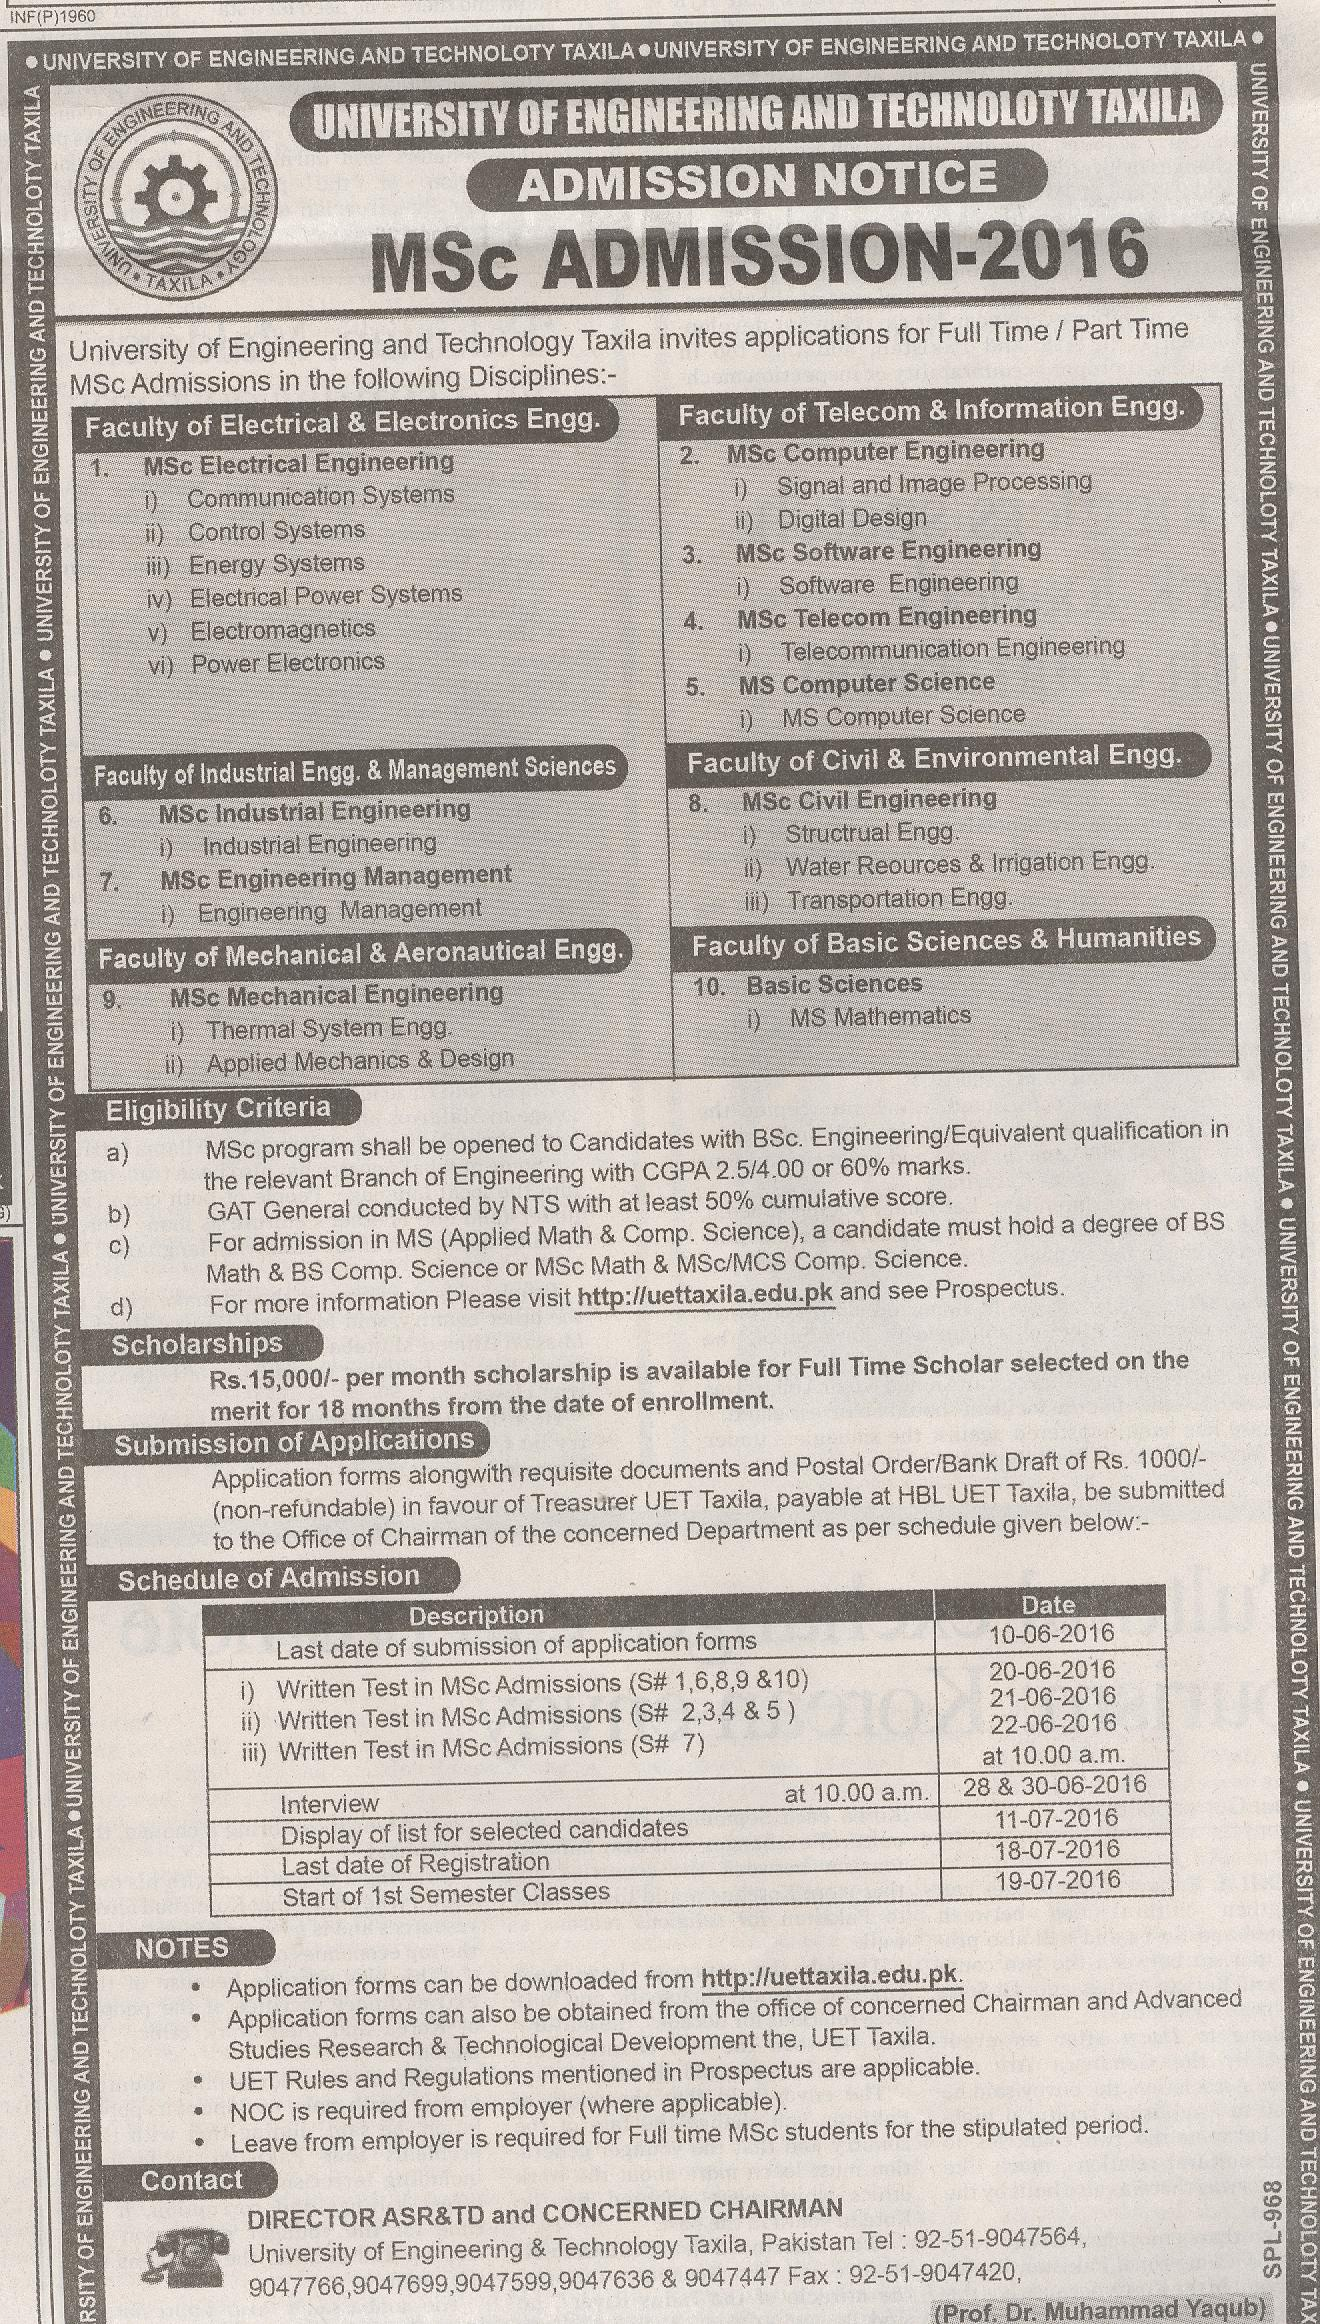 University of Engineering Technology Taxila Admission 2016